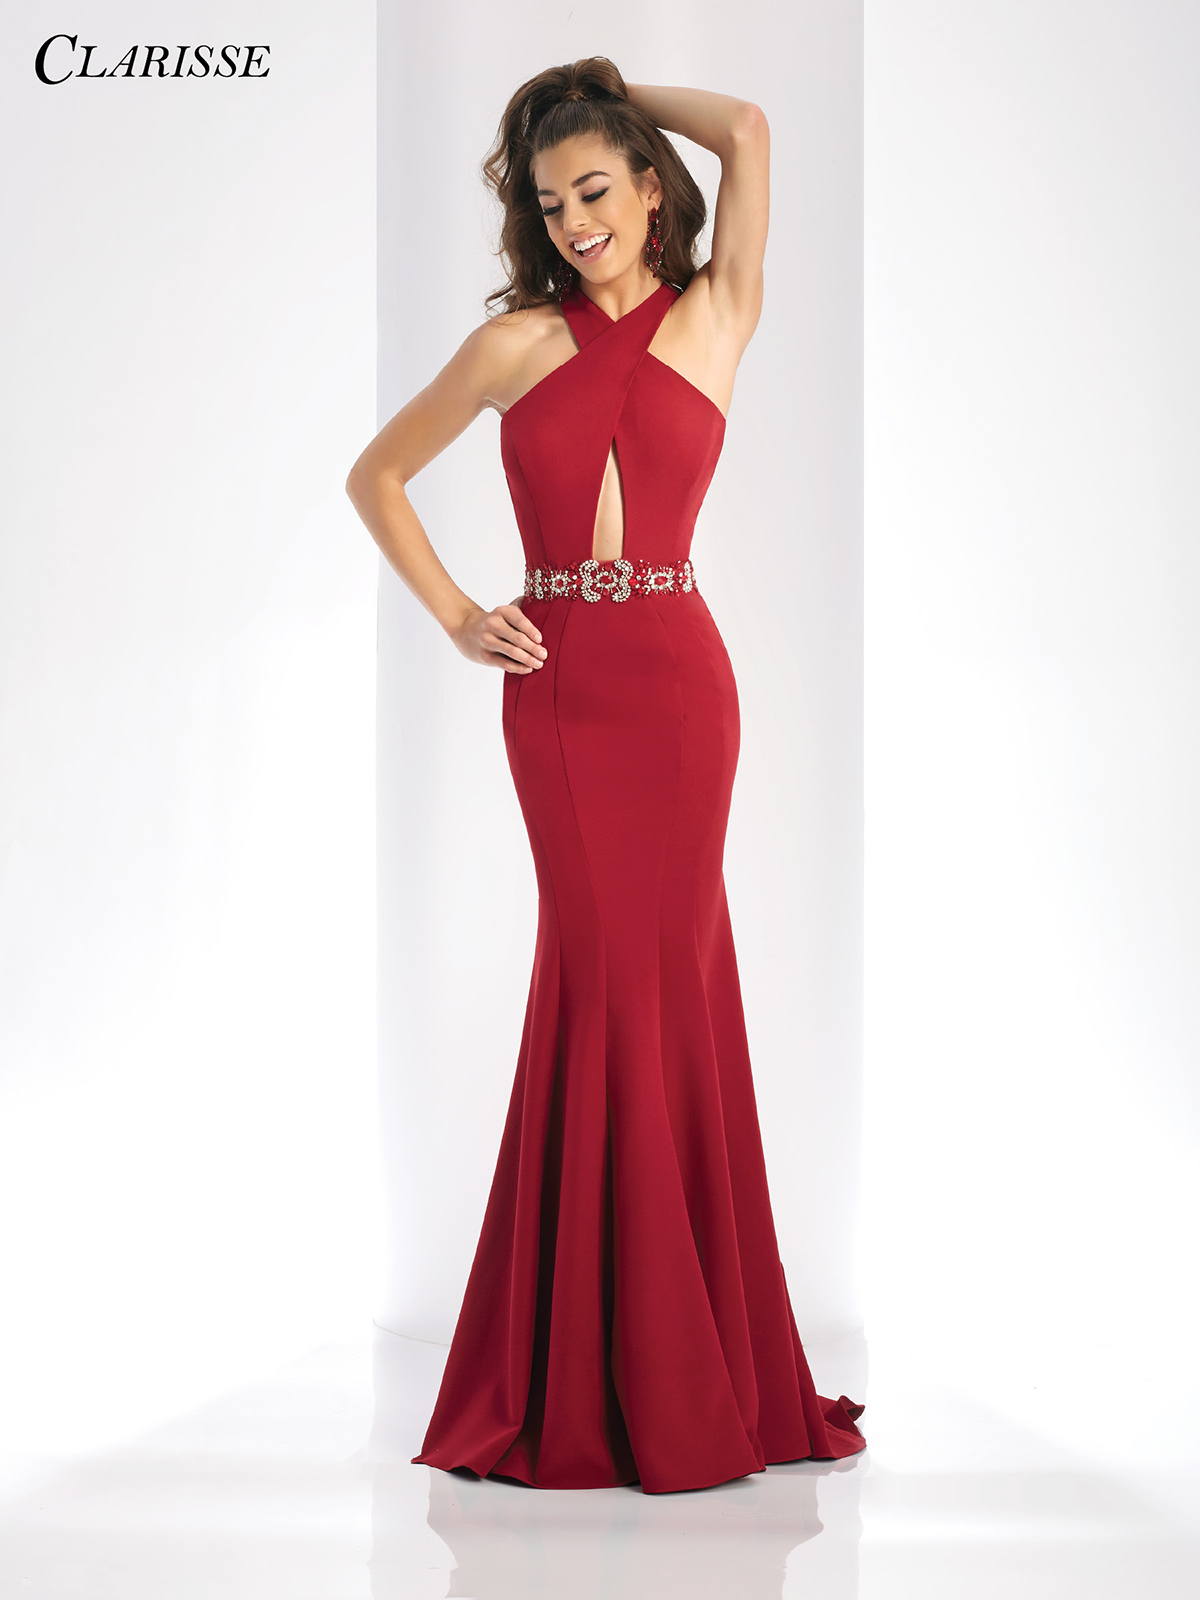 2018 Prom Dress Clarisse 3417 Promgirl Net